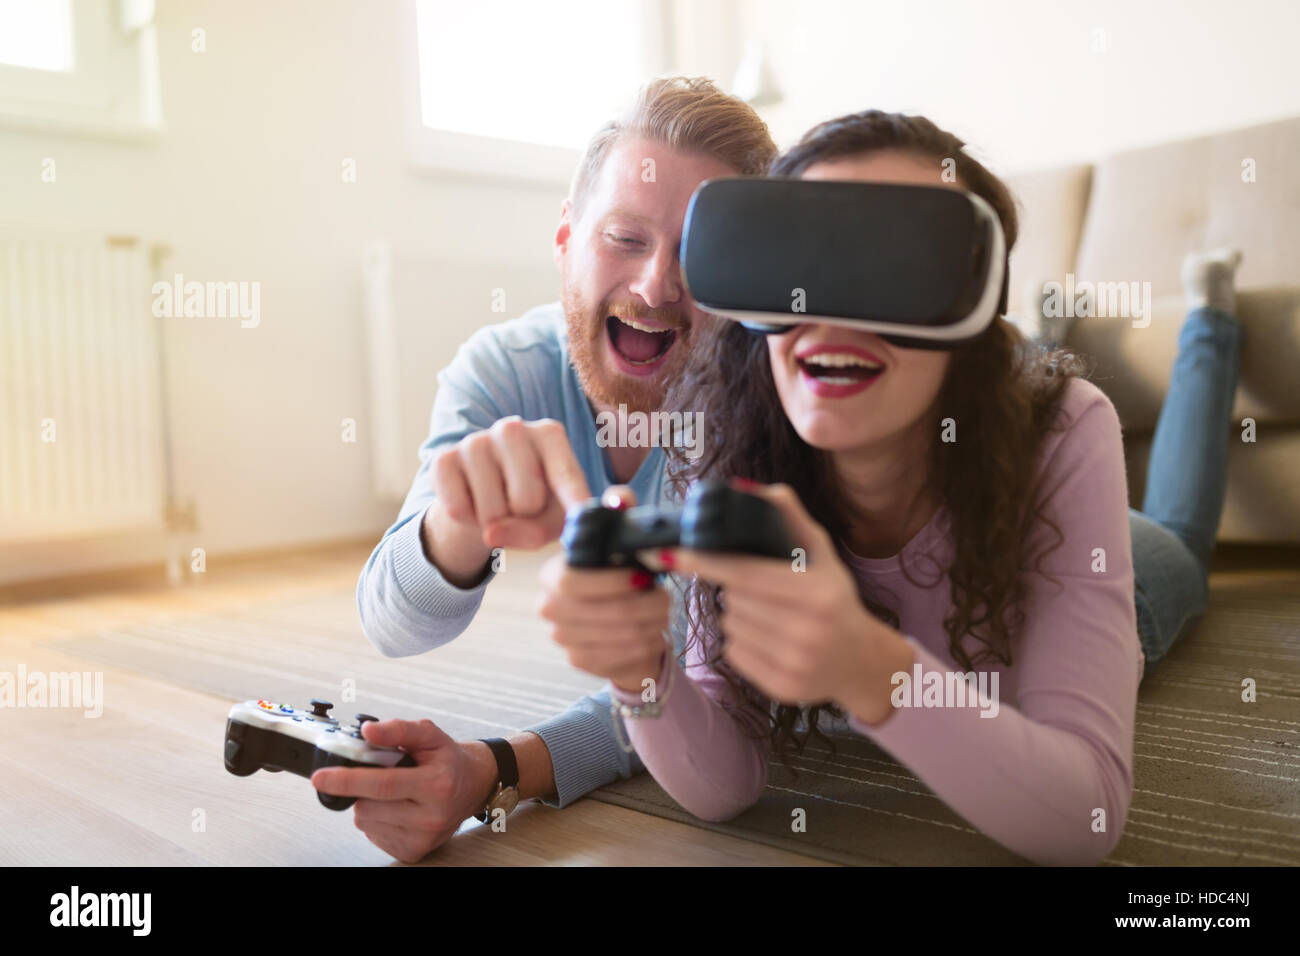 Couple having fun enjoying VR and playing games - Stock Image